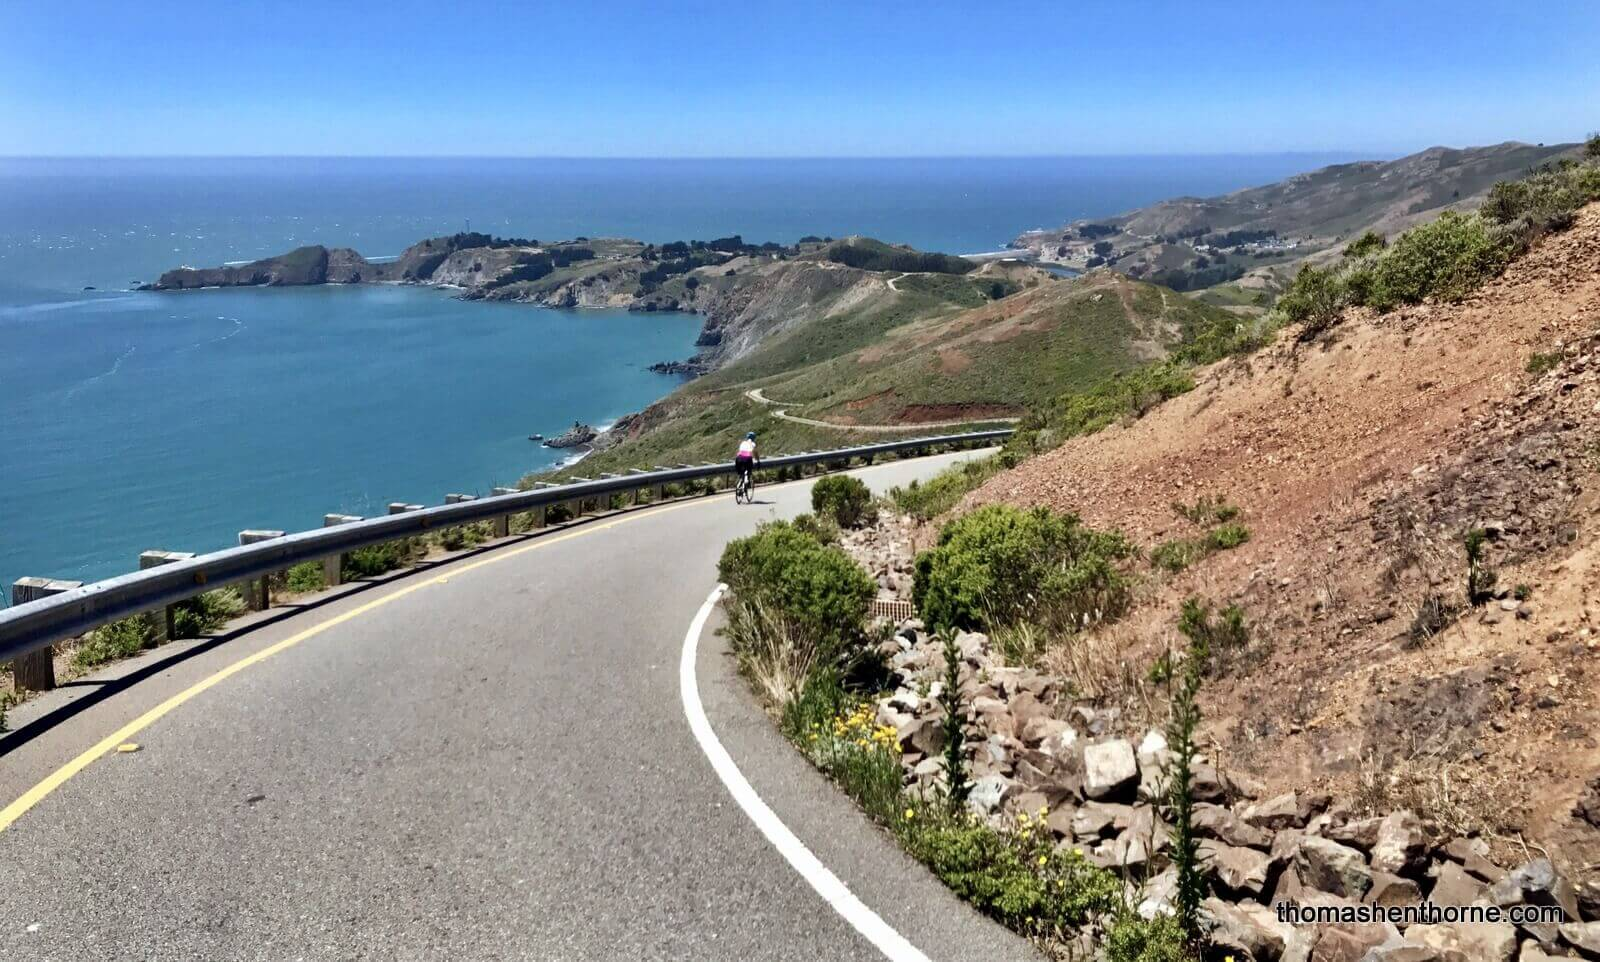 Biking in the Marin Headlands